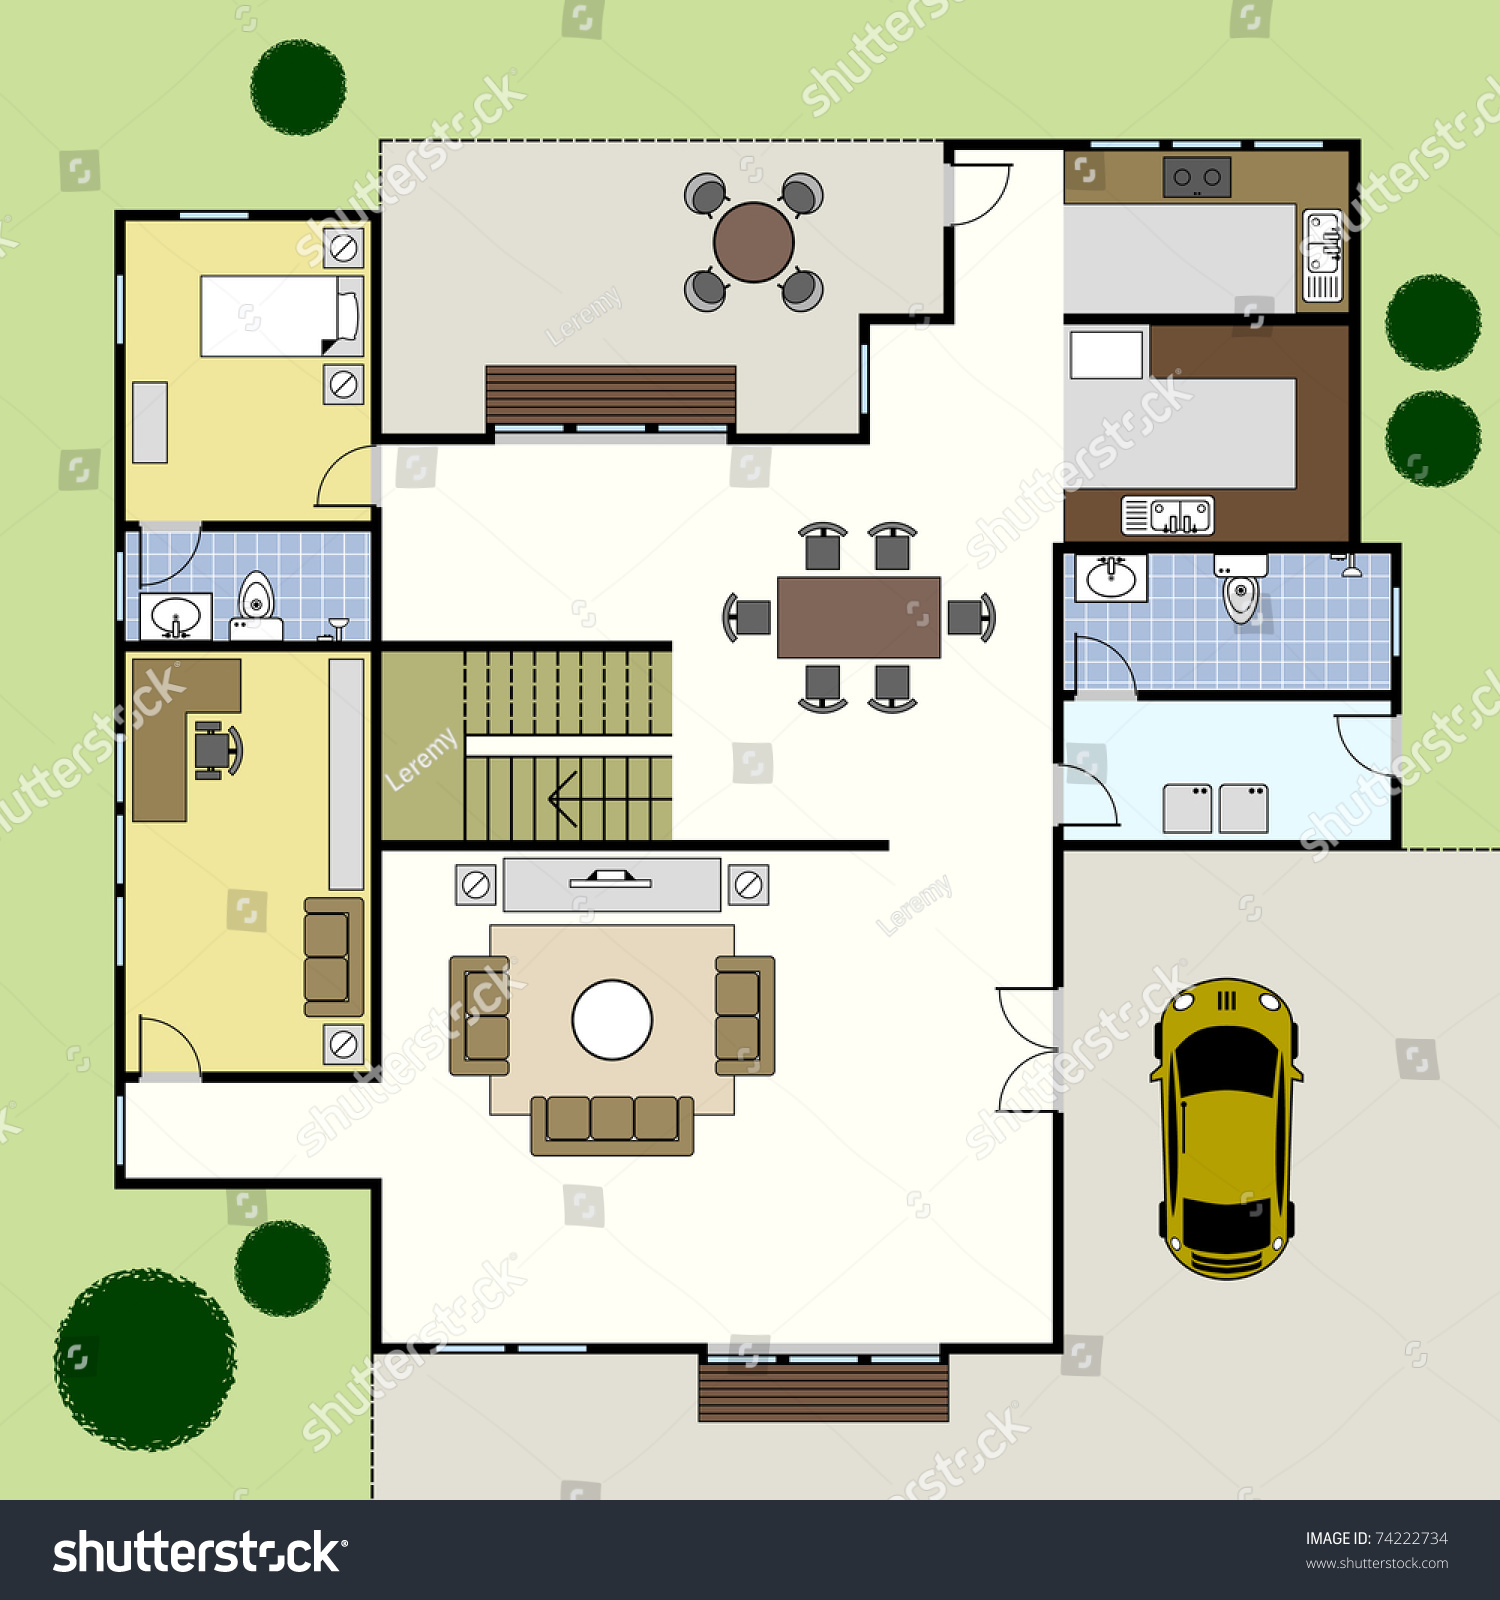 Ground floor plan floorplan house home stock vector House layout design